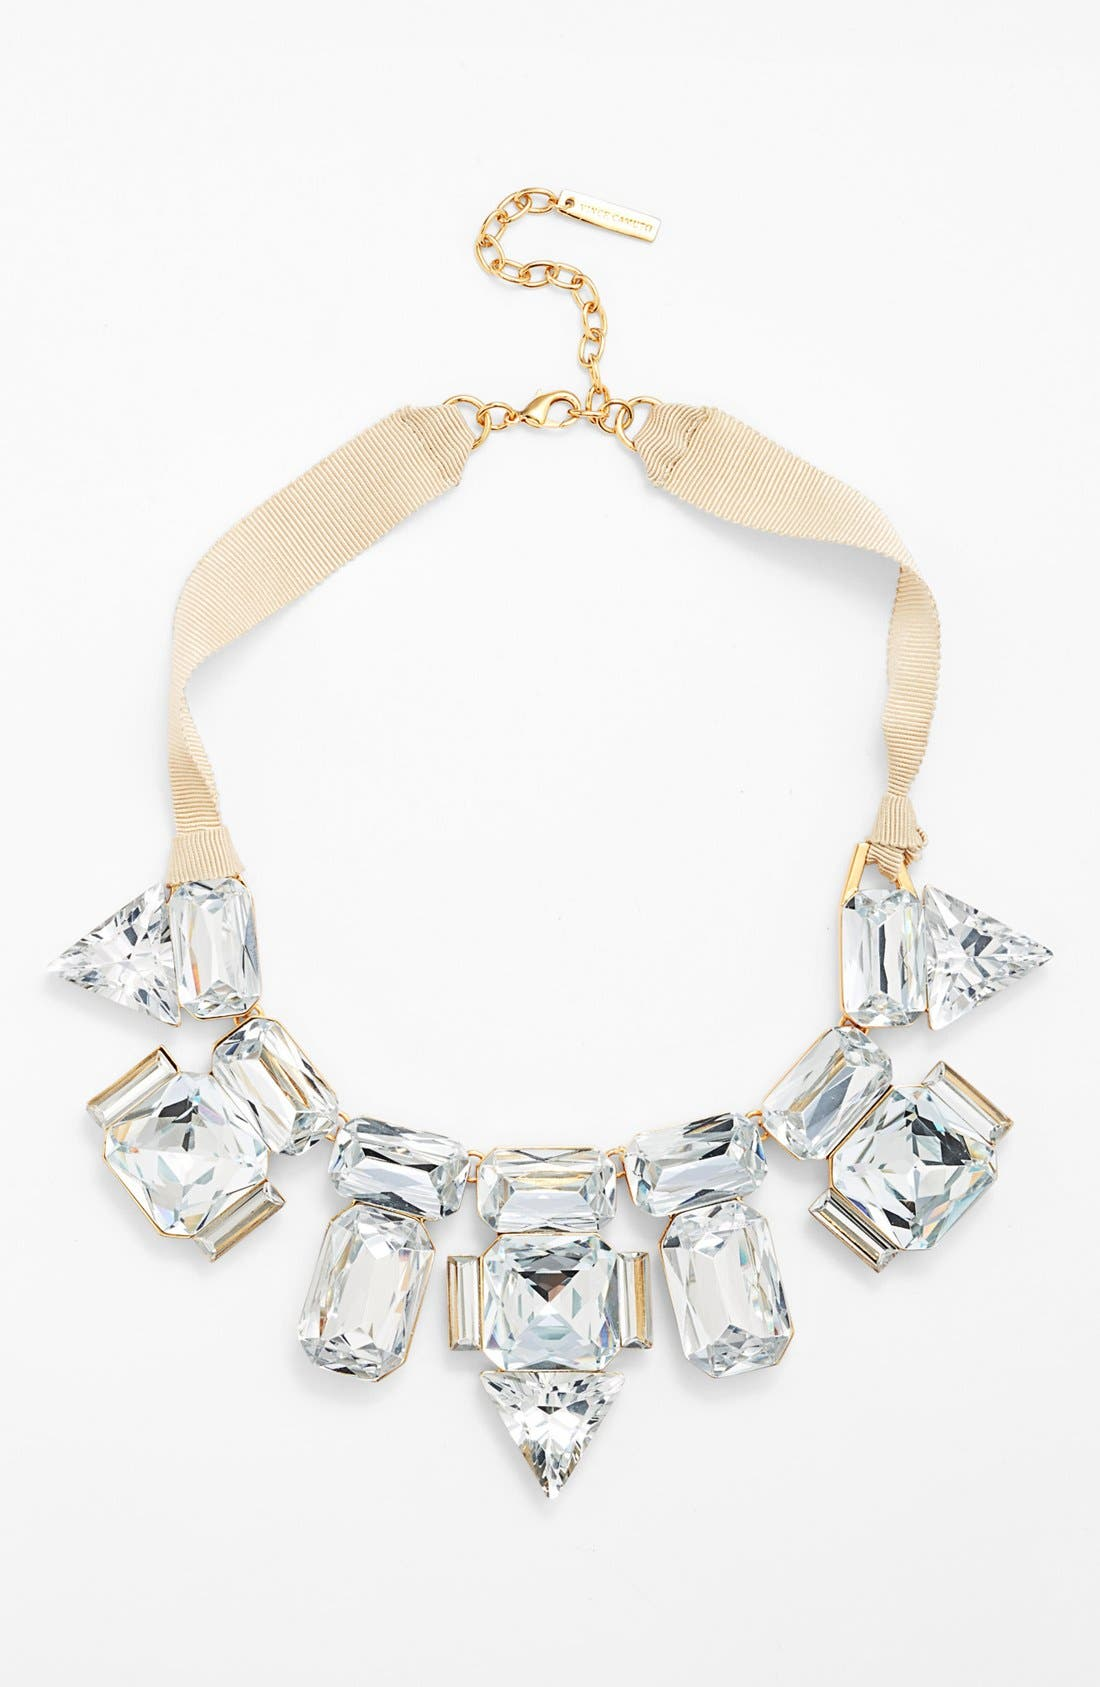 Alternate Image 1 Selected - Vince Camuto 'Crystal Clear' Crystal & Ribbon Statement Necklace